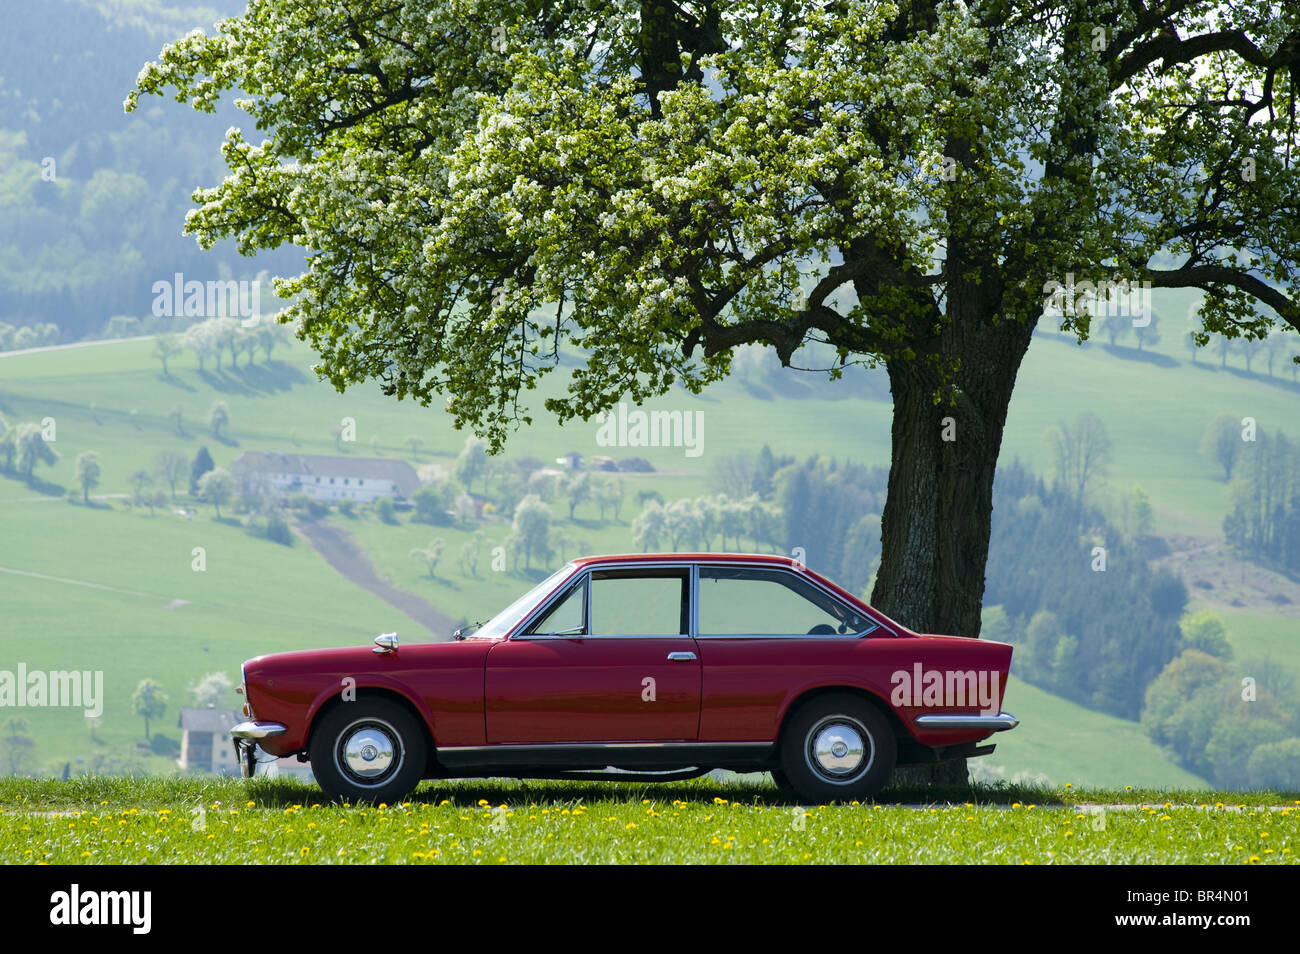 Fiat 124 Coupe in front of apple tree, Lower Austria